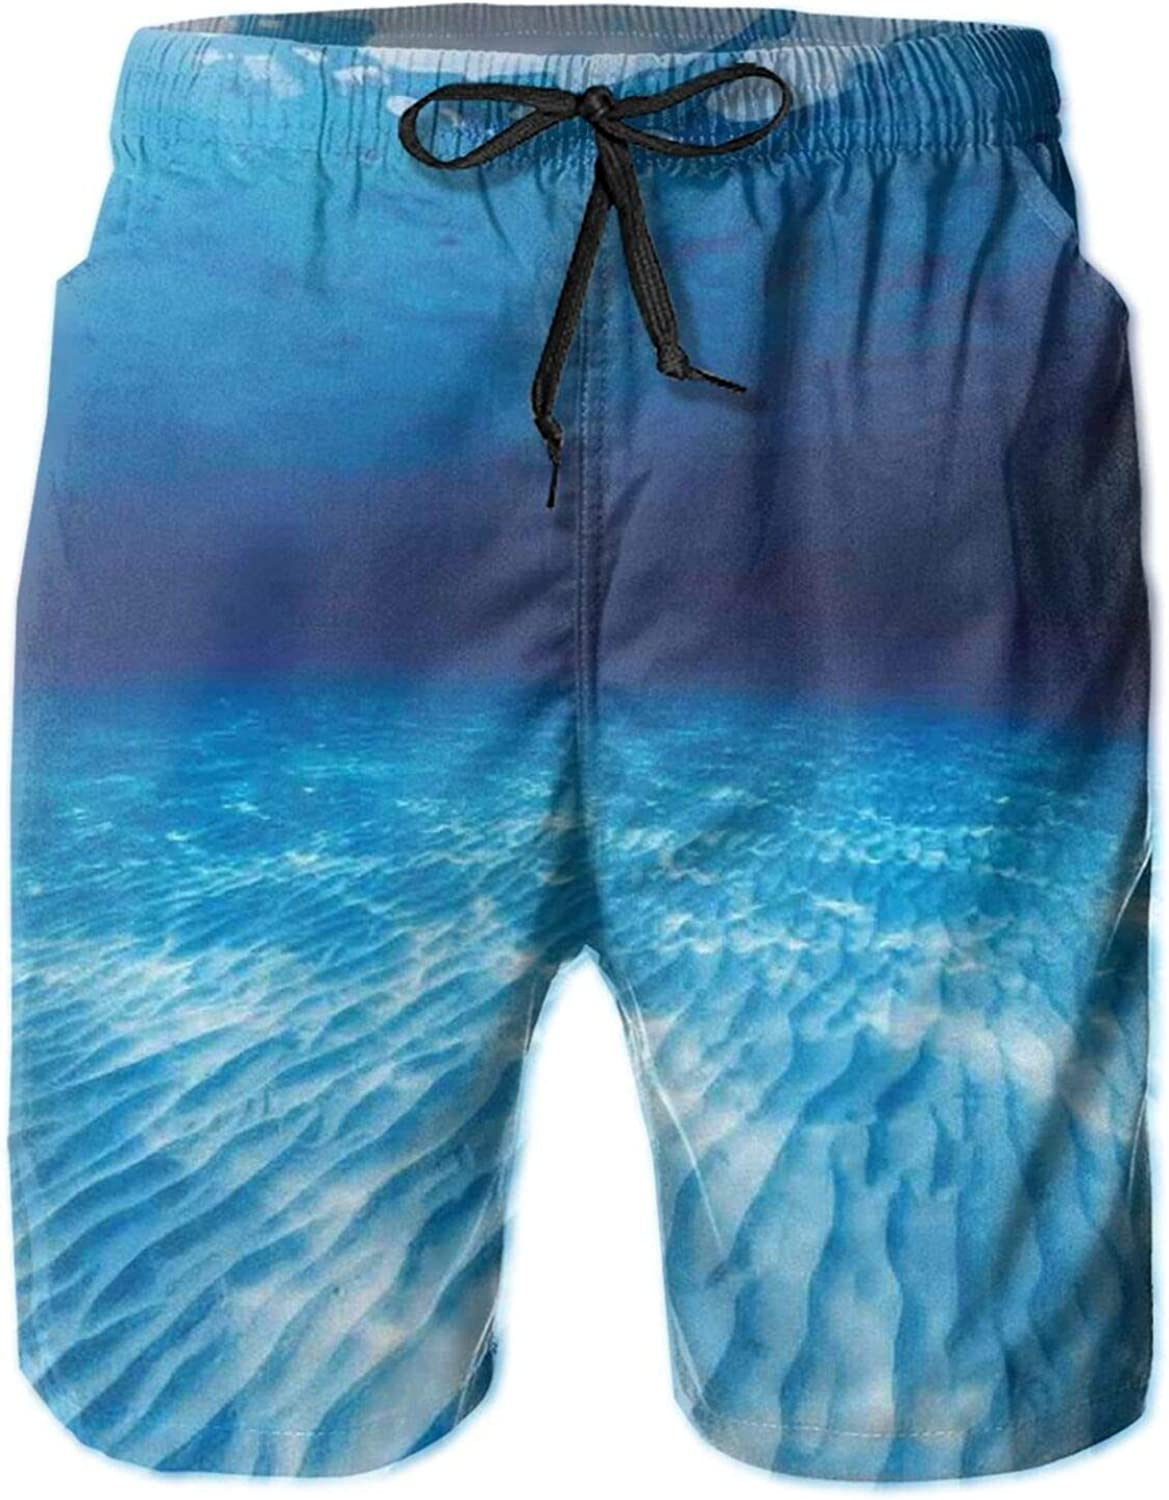 Underwater Shot of The Curled Sandy Bottom in Andaman Sea Thailand Swimming Trunks for Men Beach Shorts Casual Style,XL